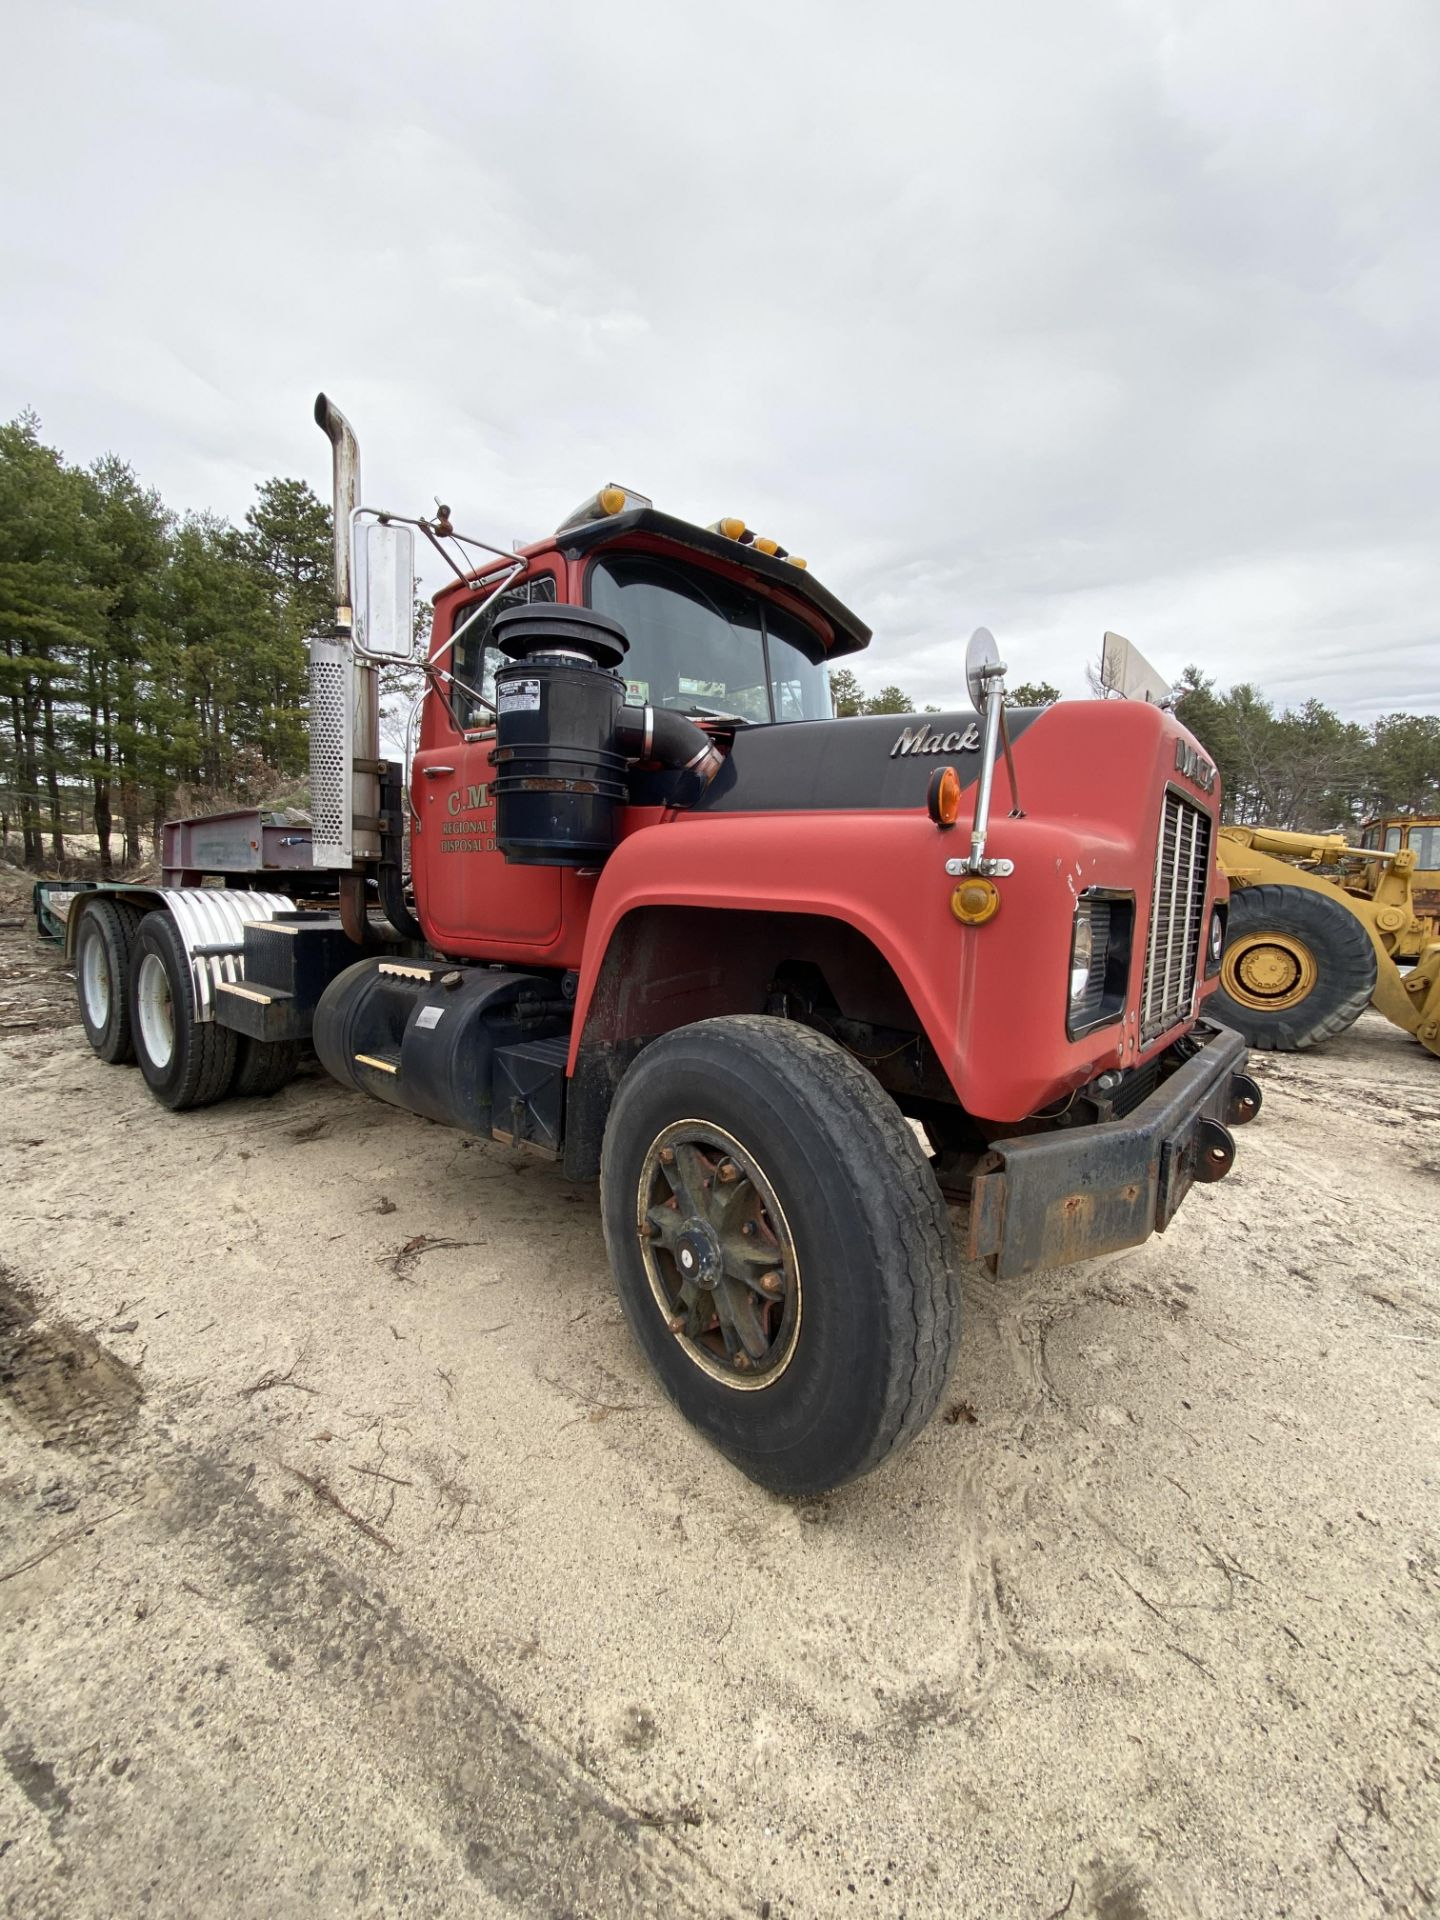 1986 Mack RD688SX Tandem Axle Tractor VIN 1M2P143Y8GA004351, Meter Reads 301,625 Miles, Day Cab, - Image 10 of 22